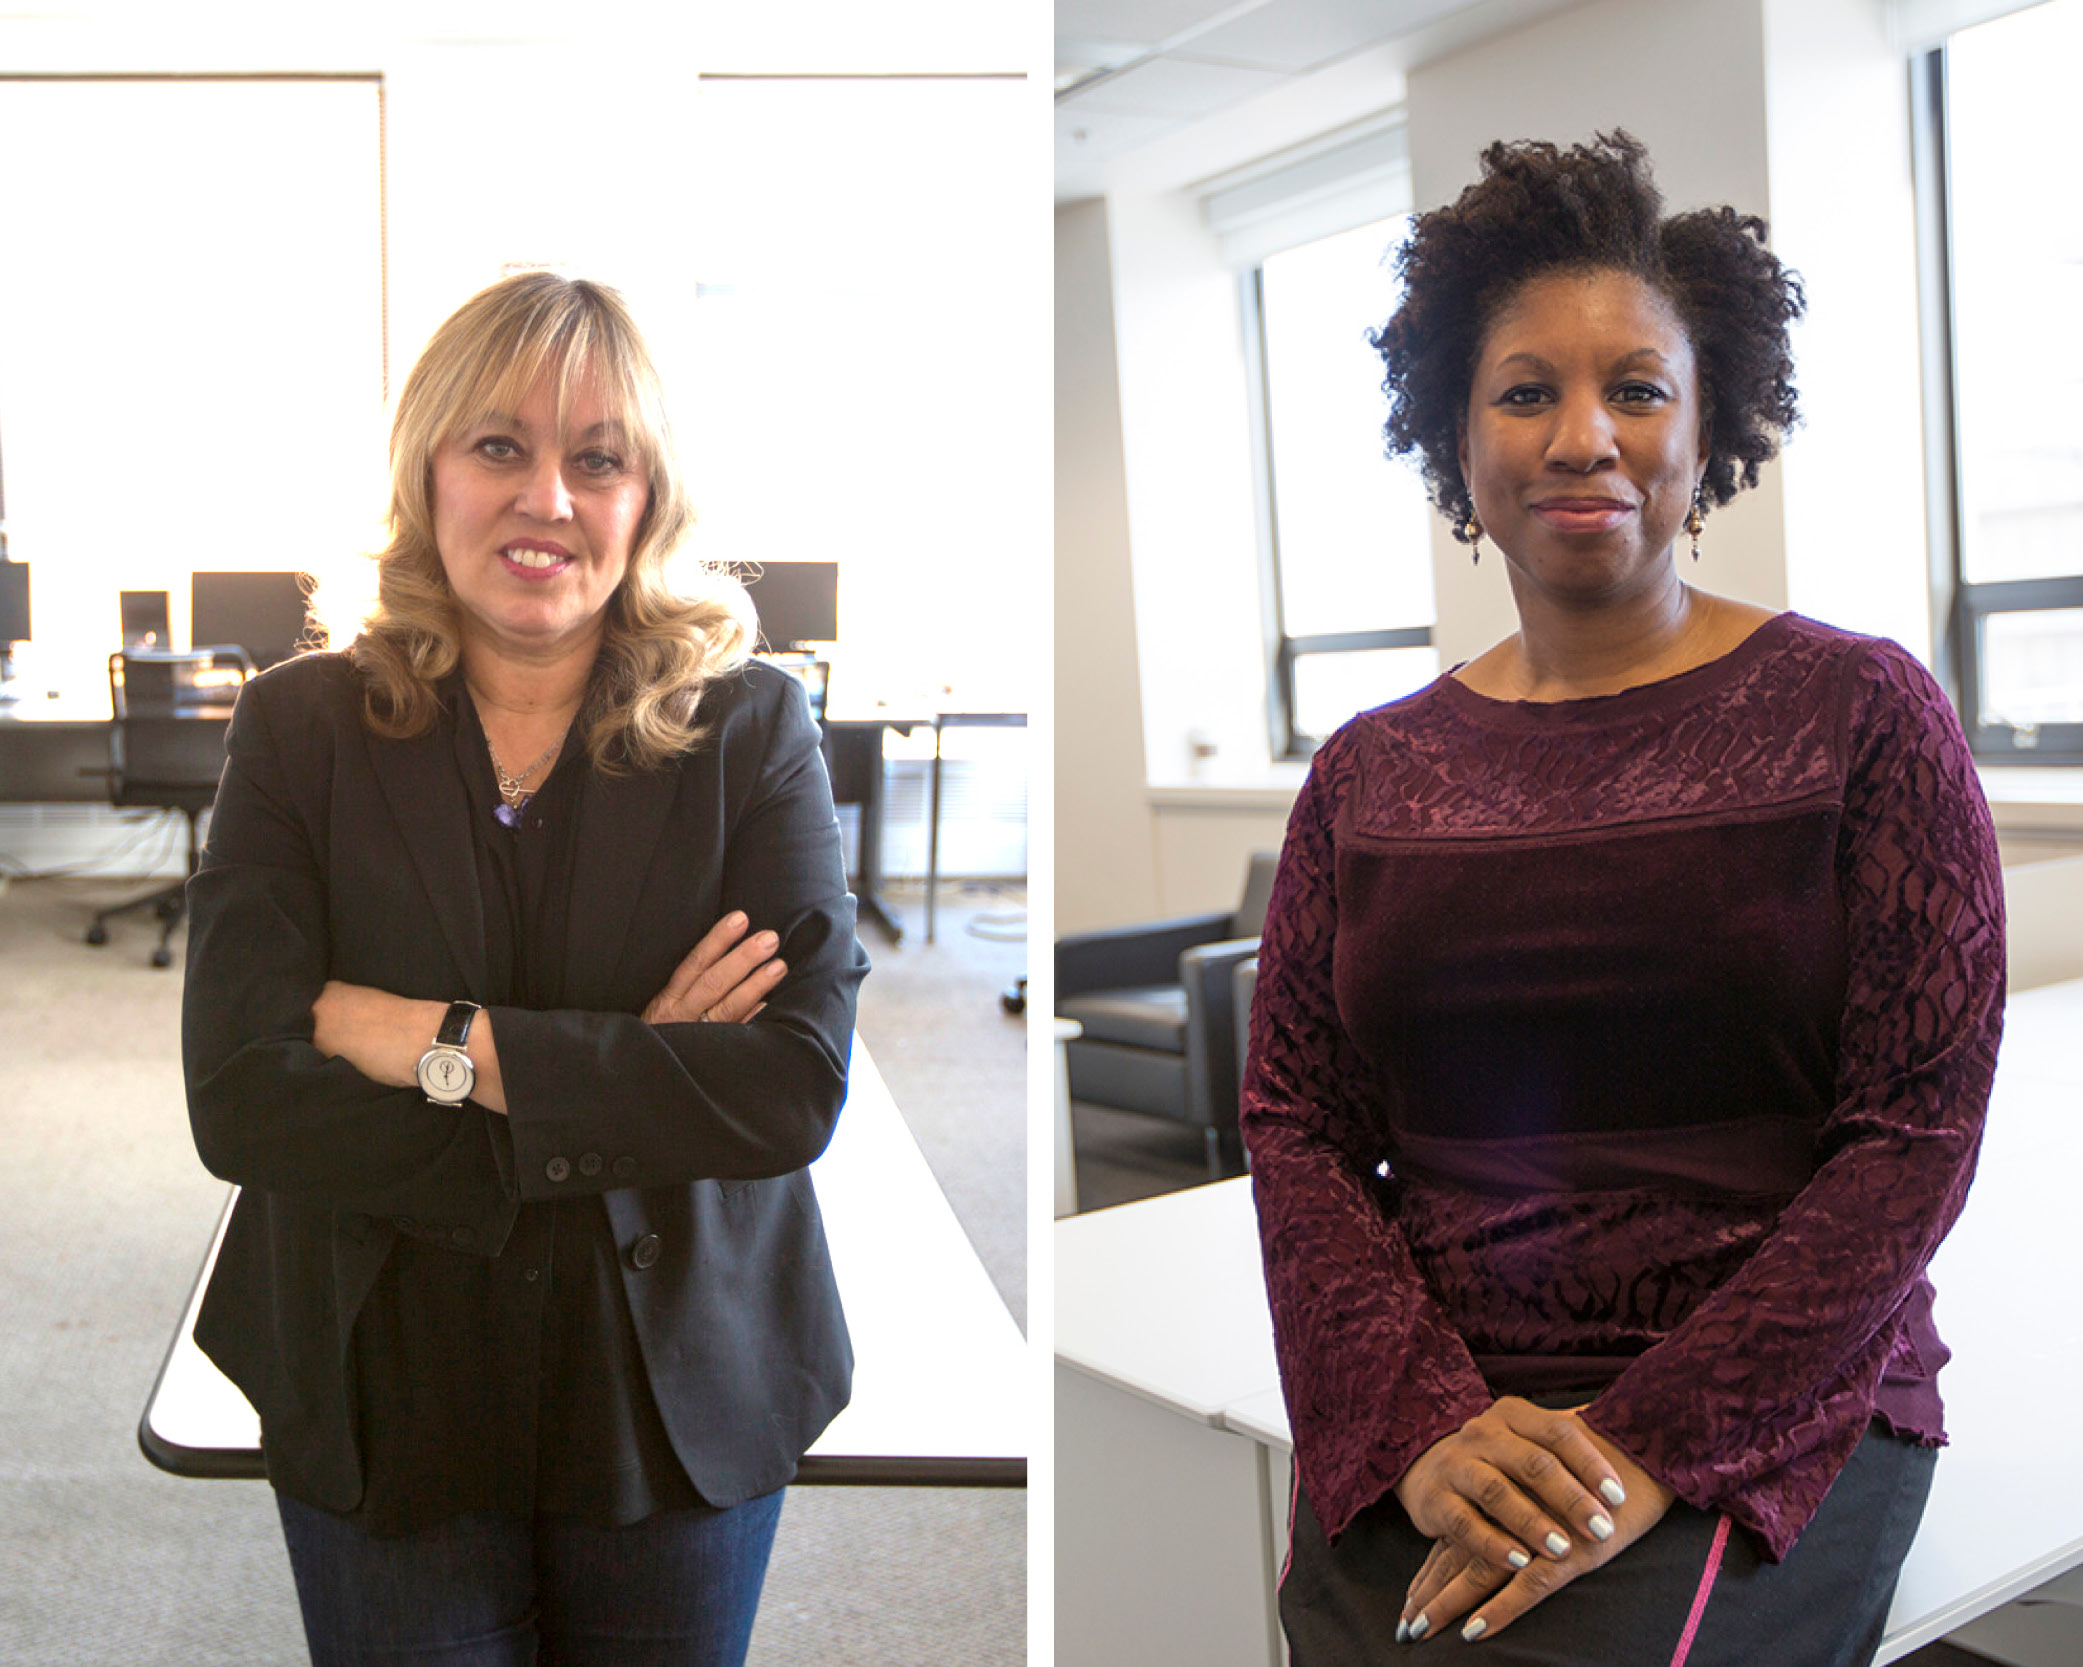 The Toronto Star talks to Ramona Alaggia and Charmaine Williams for insight on COVID-19's impact on women's mental health